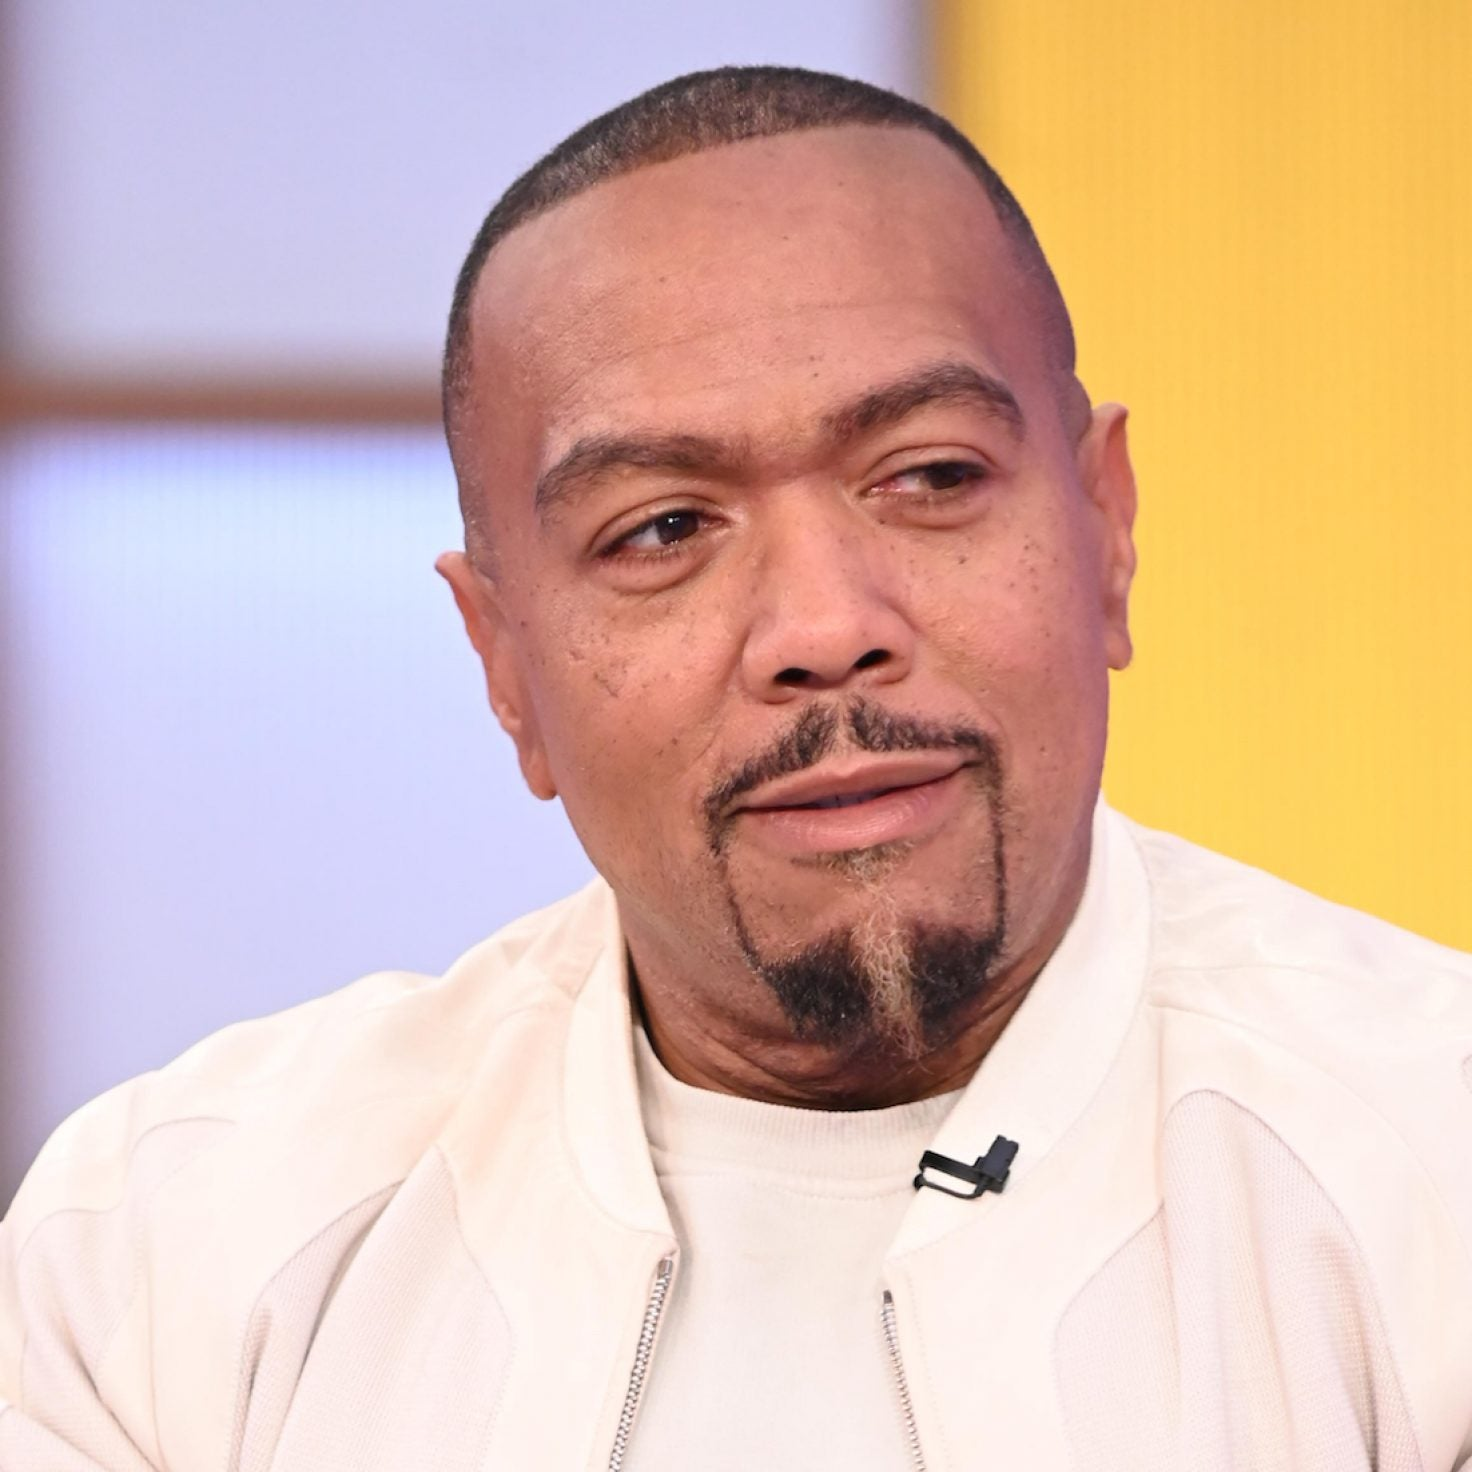 Timbaland Reveals Opioid Addiction Affected His Career: 'I Was Abusing My Gift'